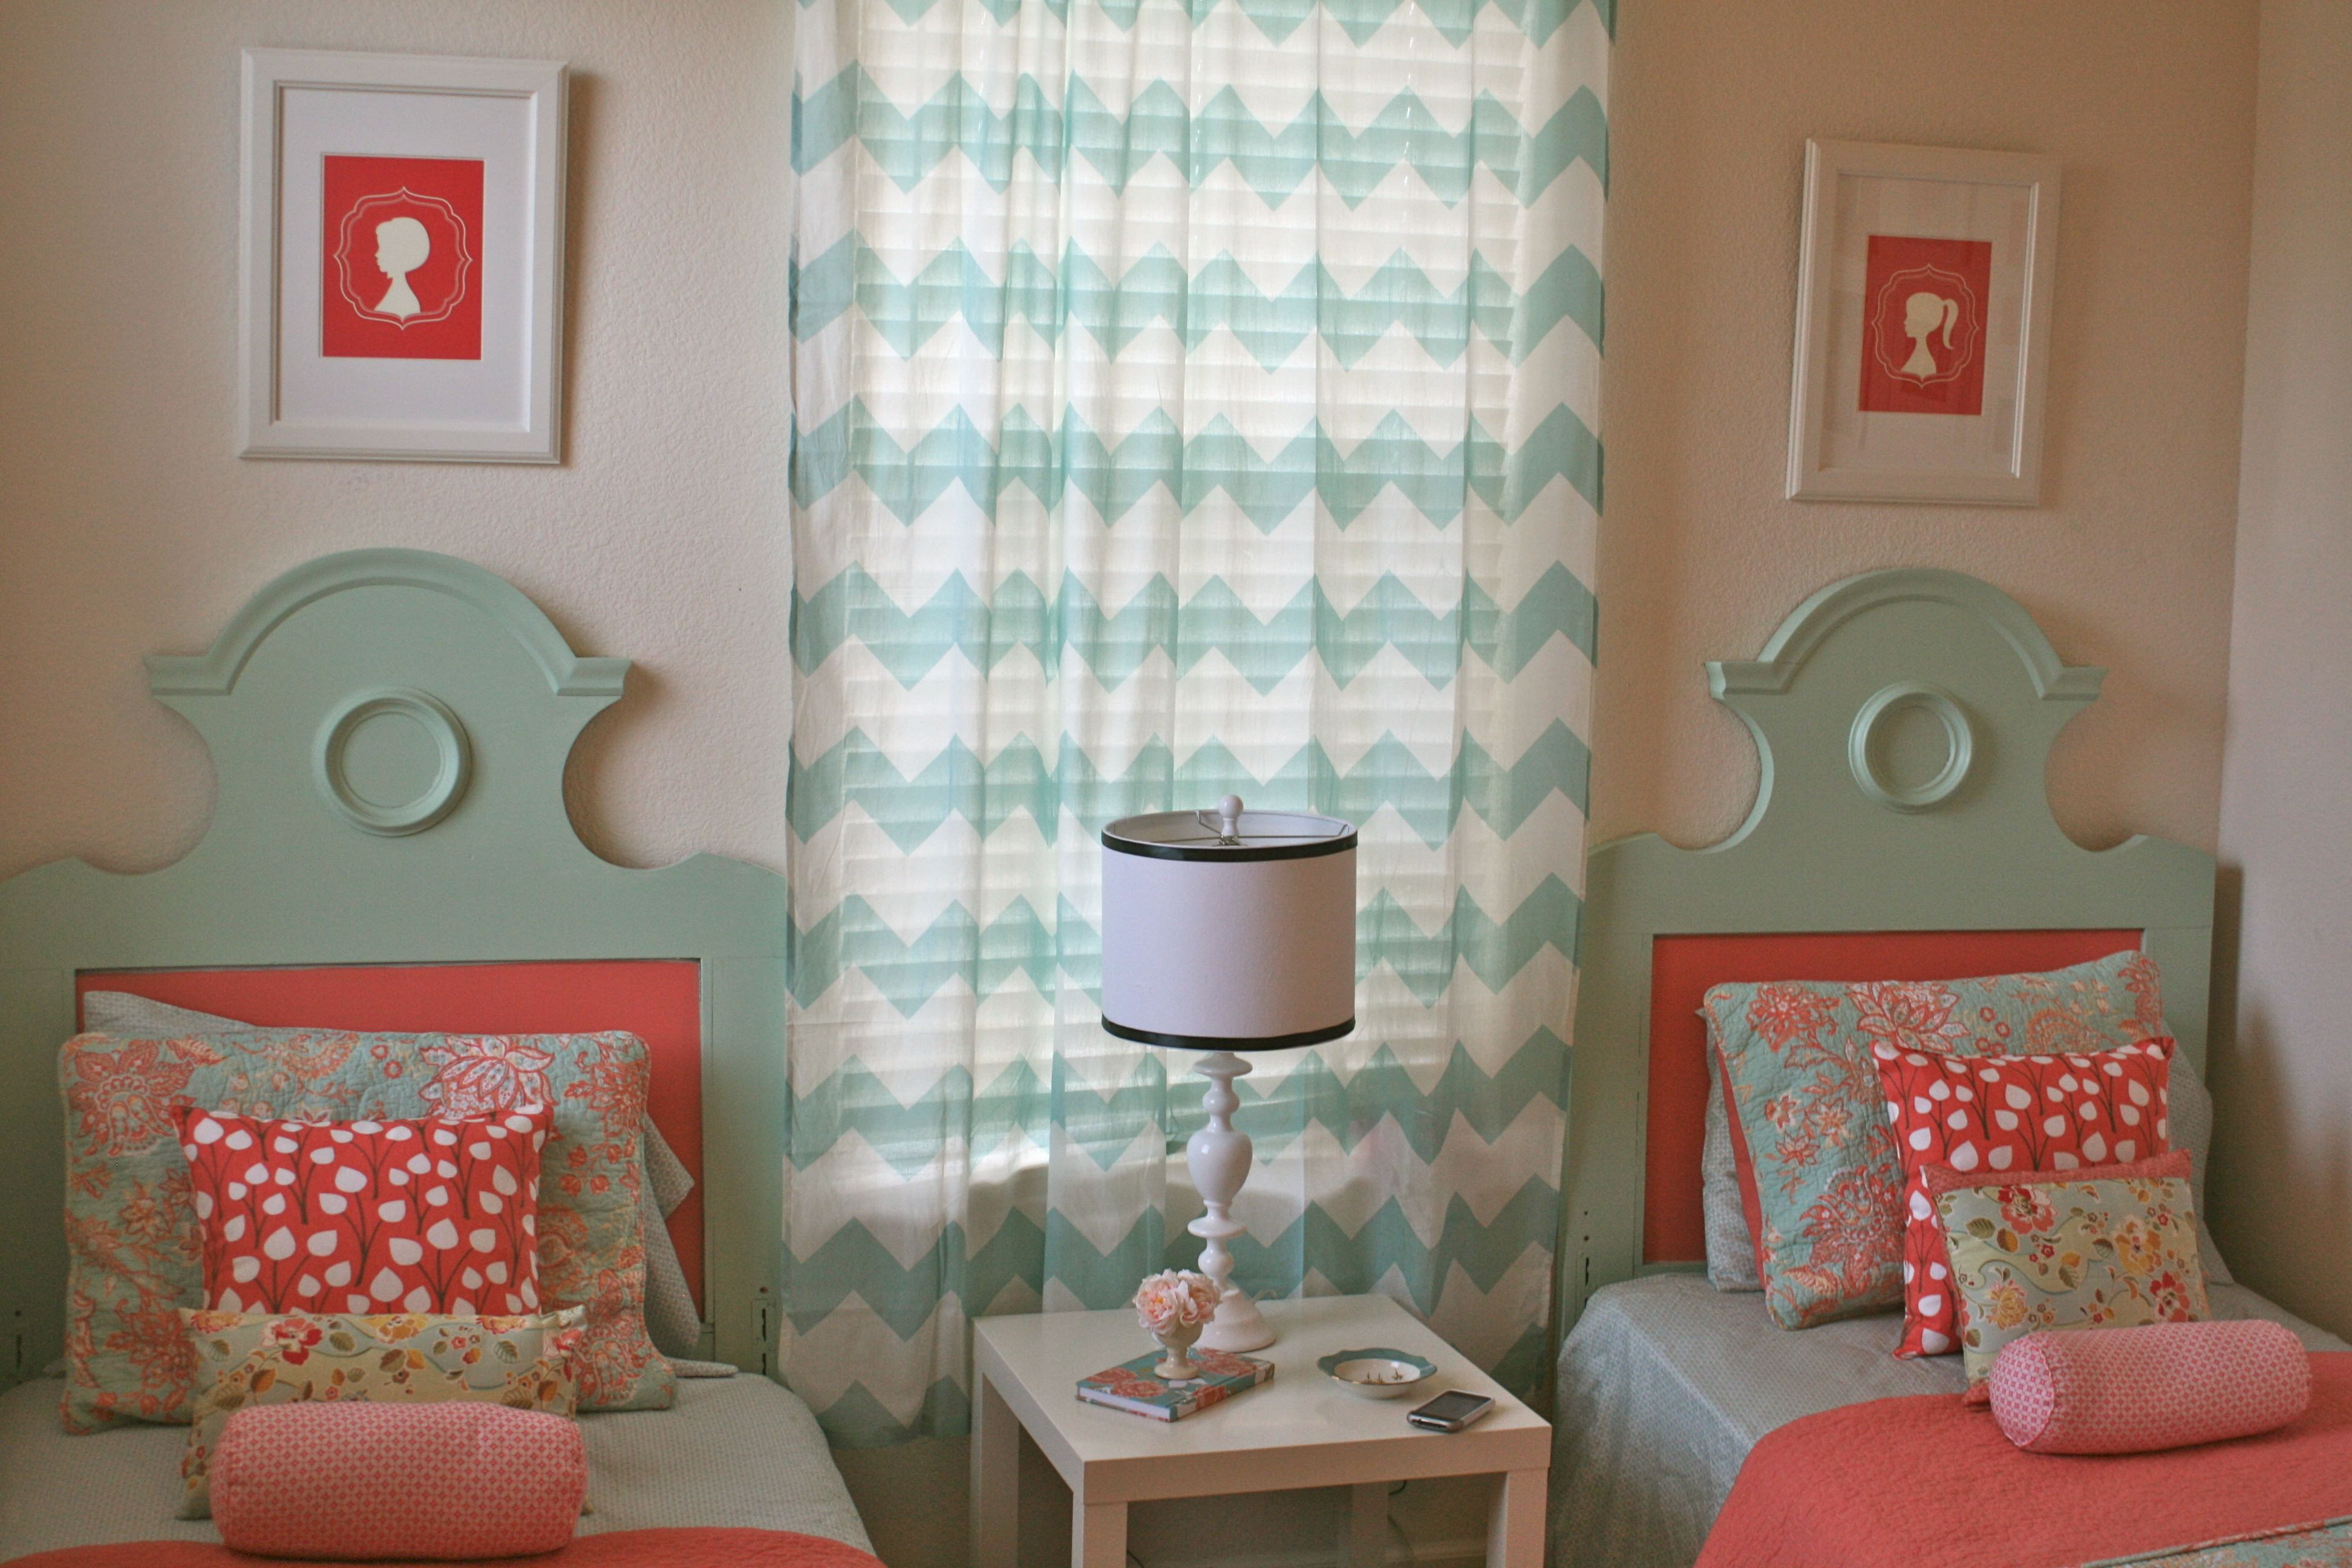 My girls coral, pink and blue room.  More pictures at www.simply-designgirl.blogspot.com